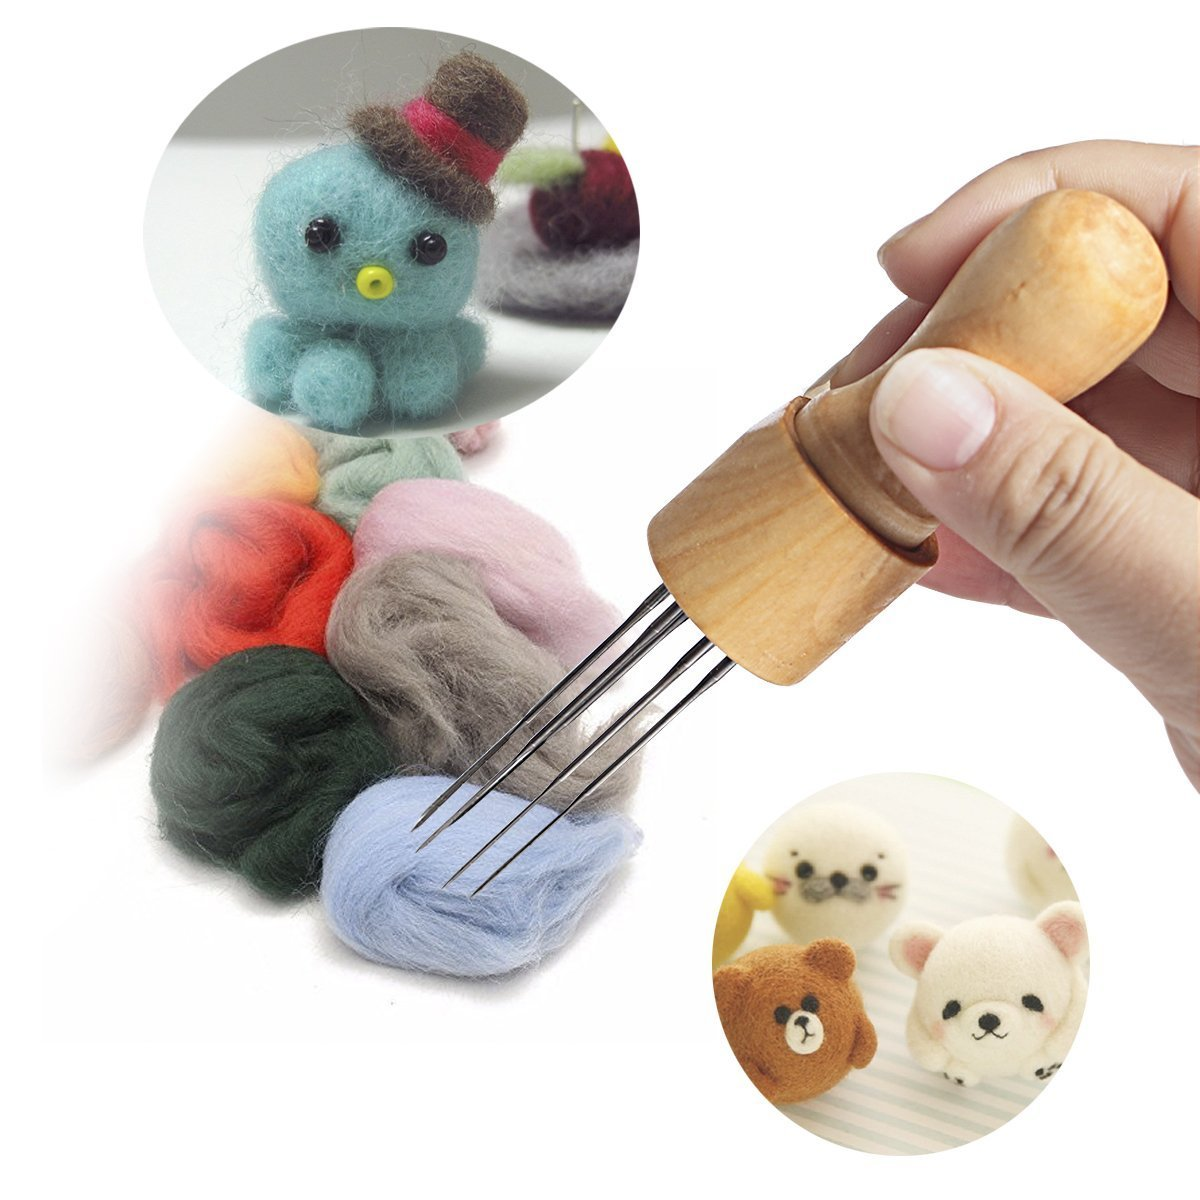 DIY Felting Needle with Eight Needles Tool Craft Wool Felt Stitch Punch Tool with Solid Wood Handle Felting More efficient